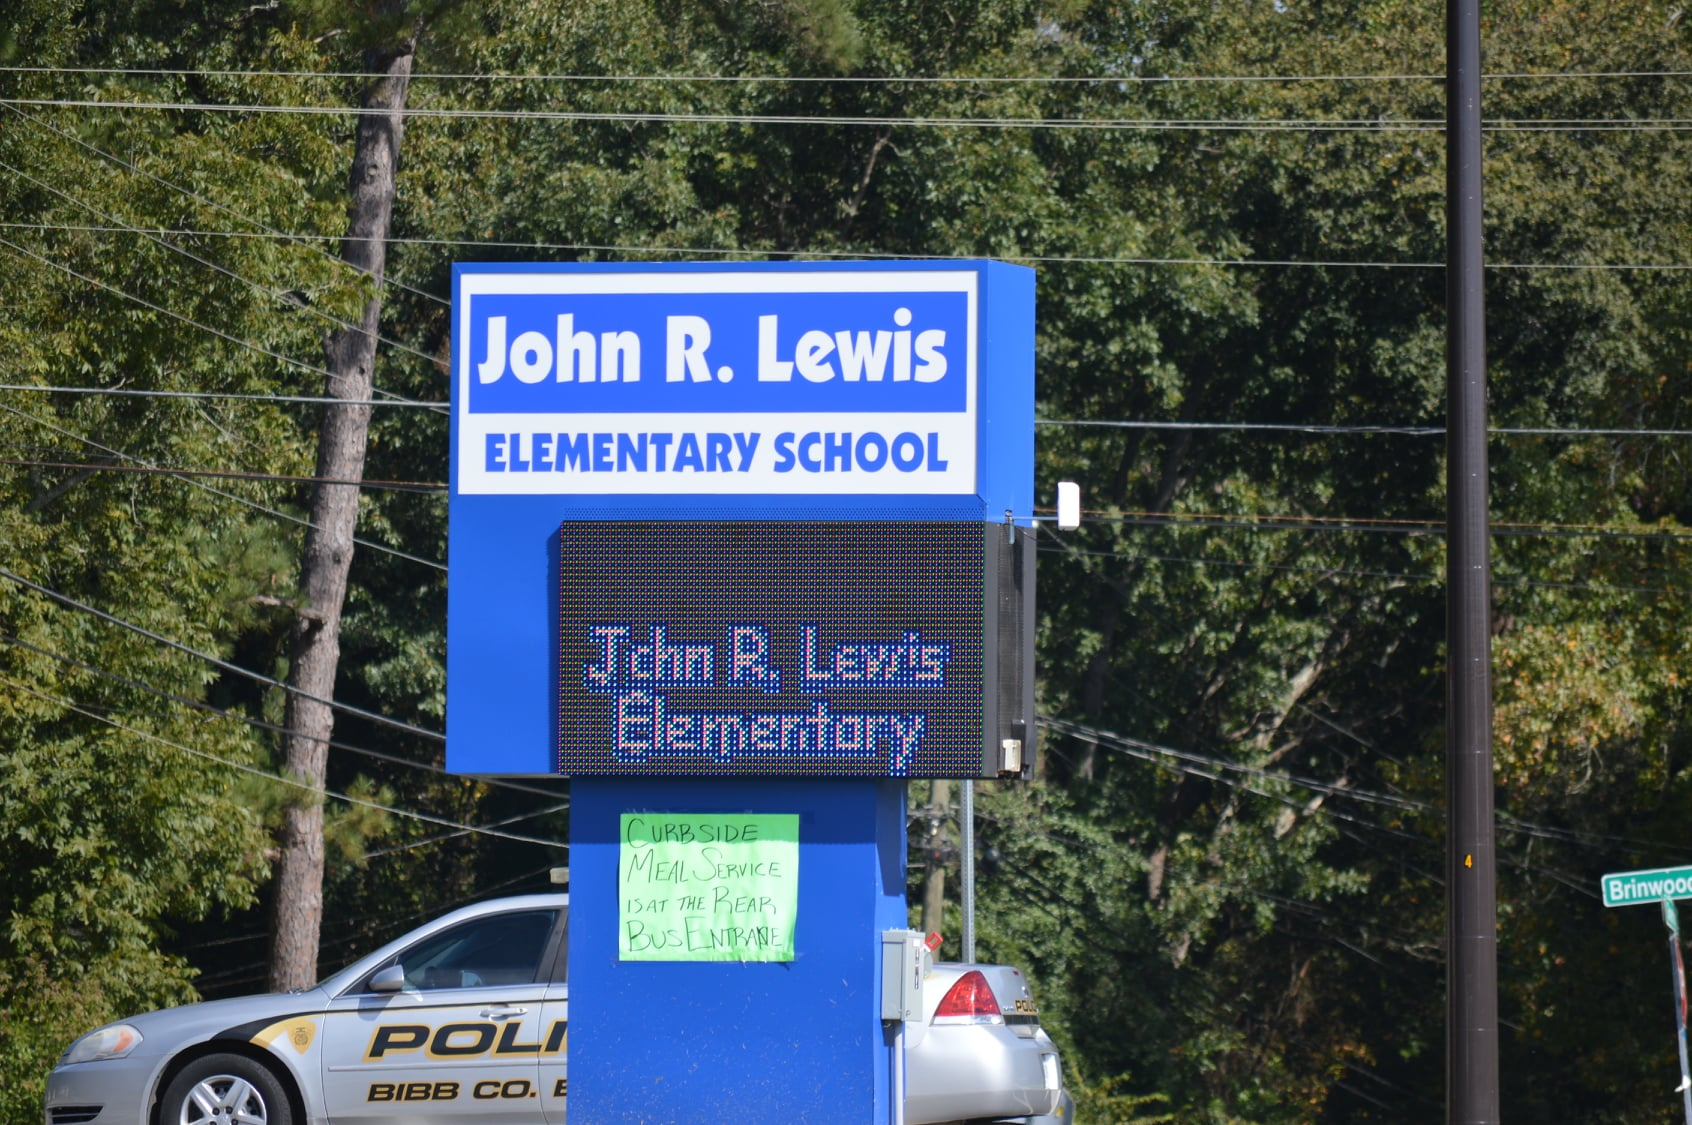 john-lewis-elementary-school-renaming-ceremony_32